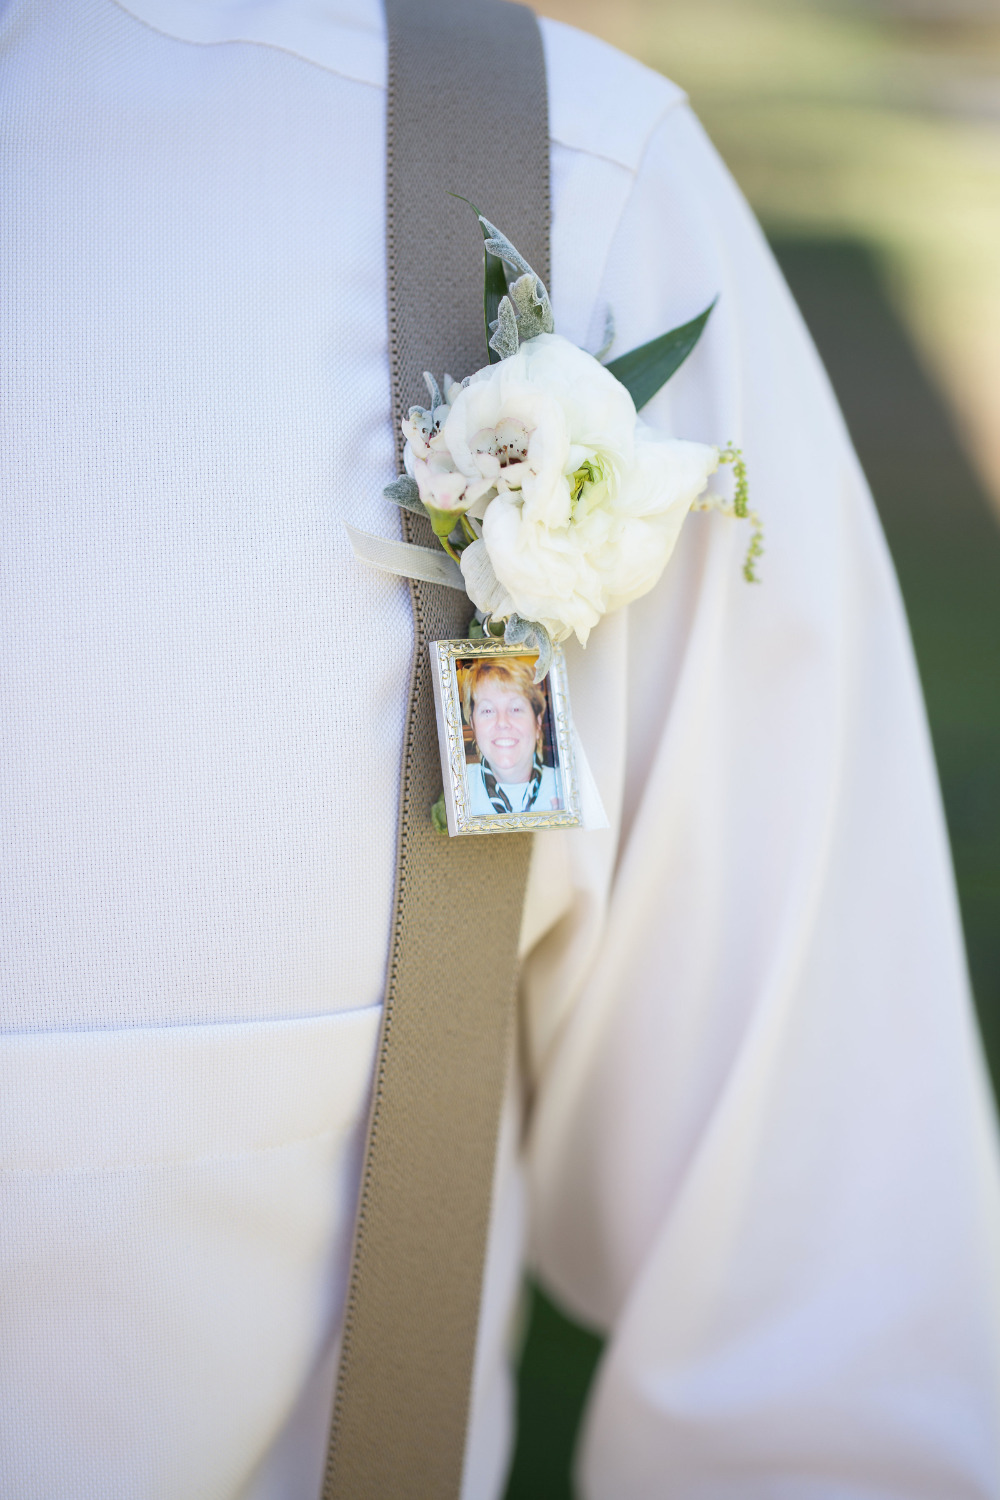 white wedding boutonniere with photo charm